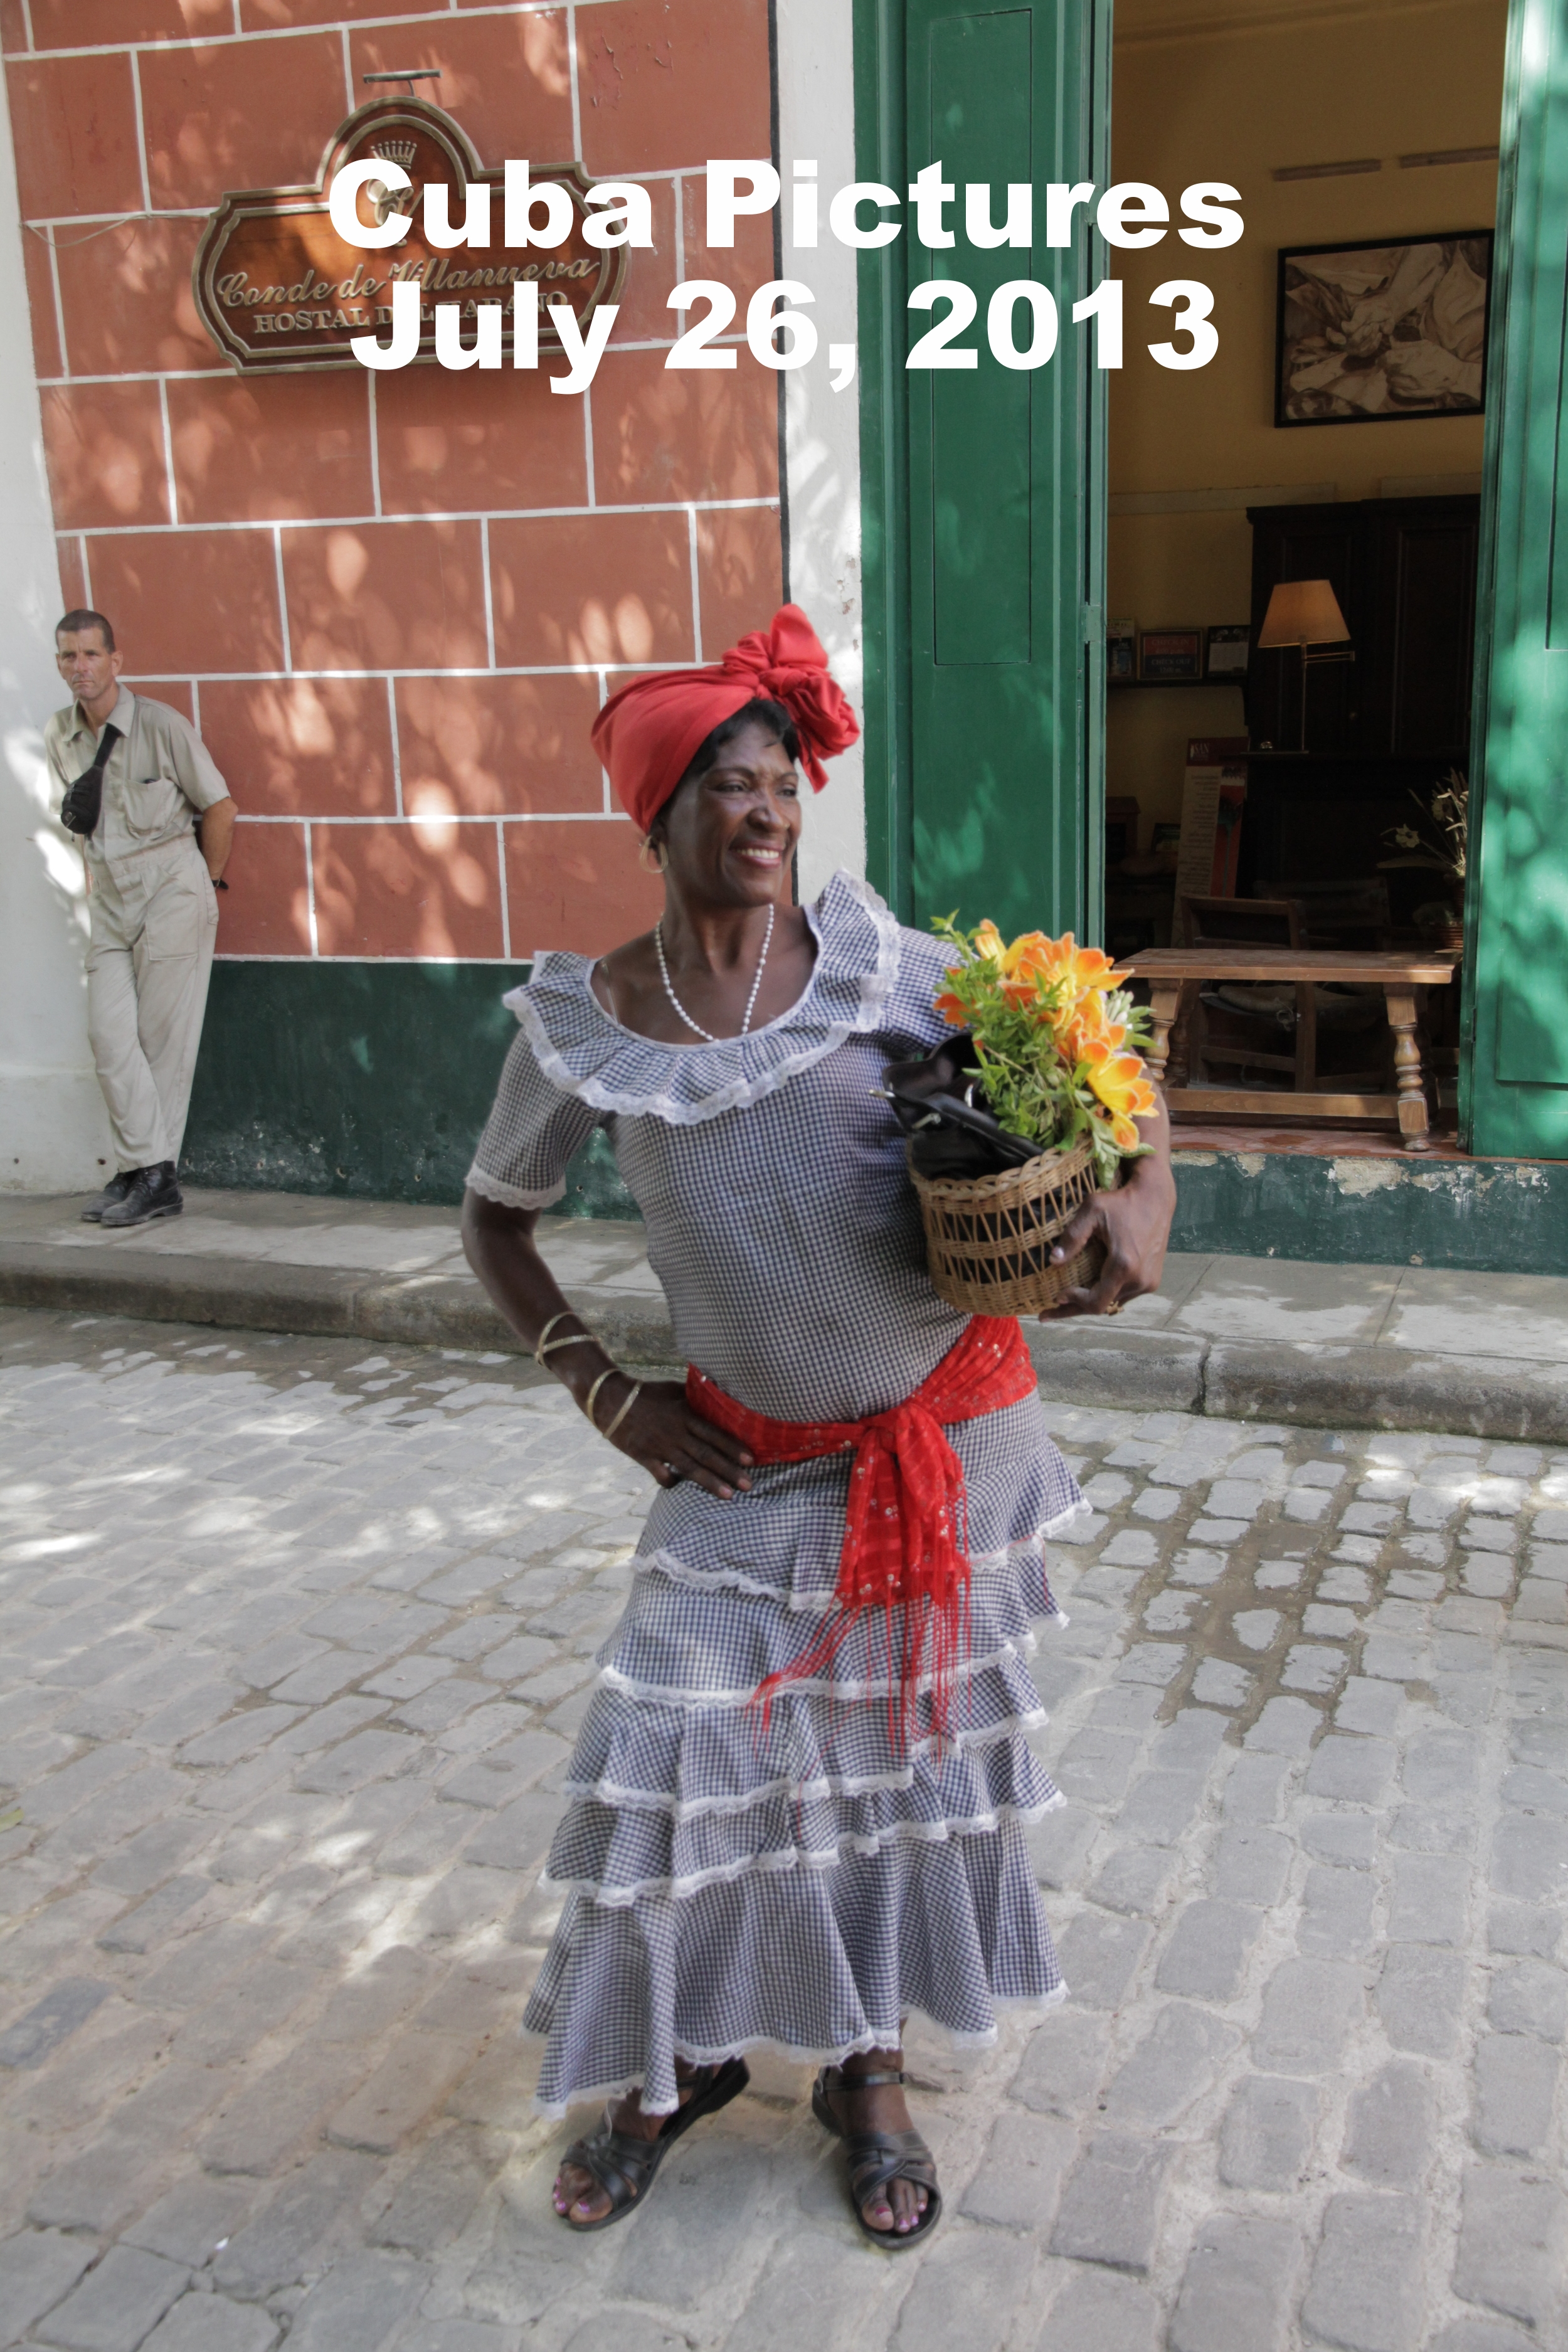 Cuba Pictures - Day 2